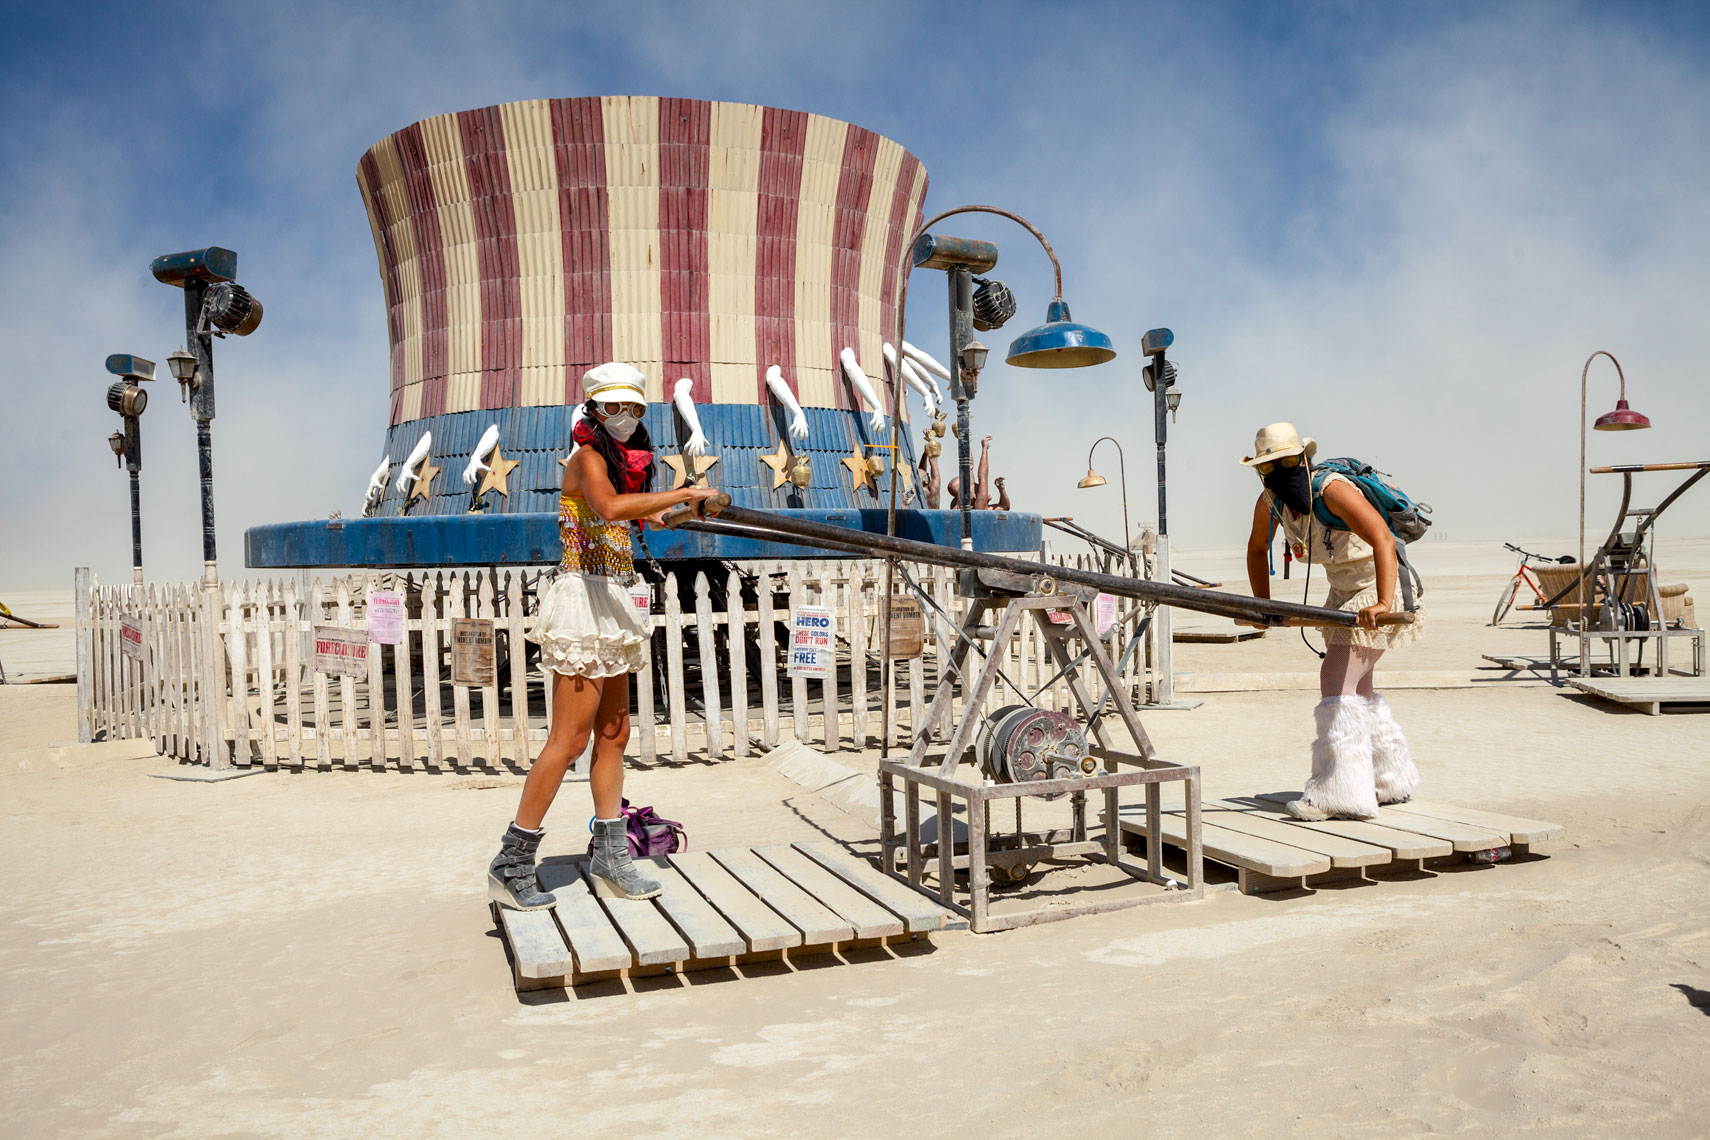 Burning Man Kinetic Art